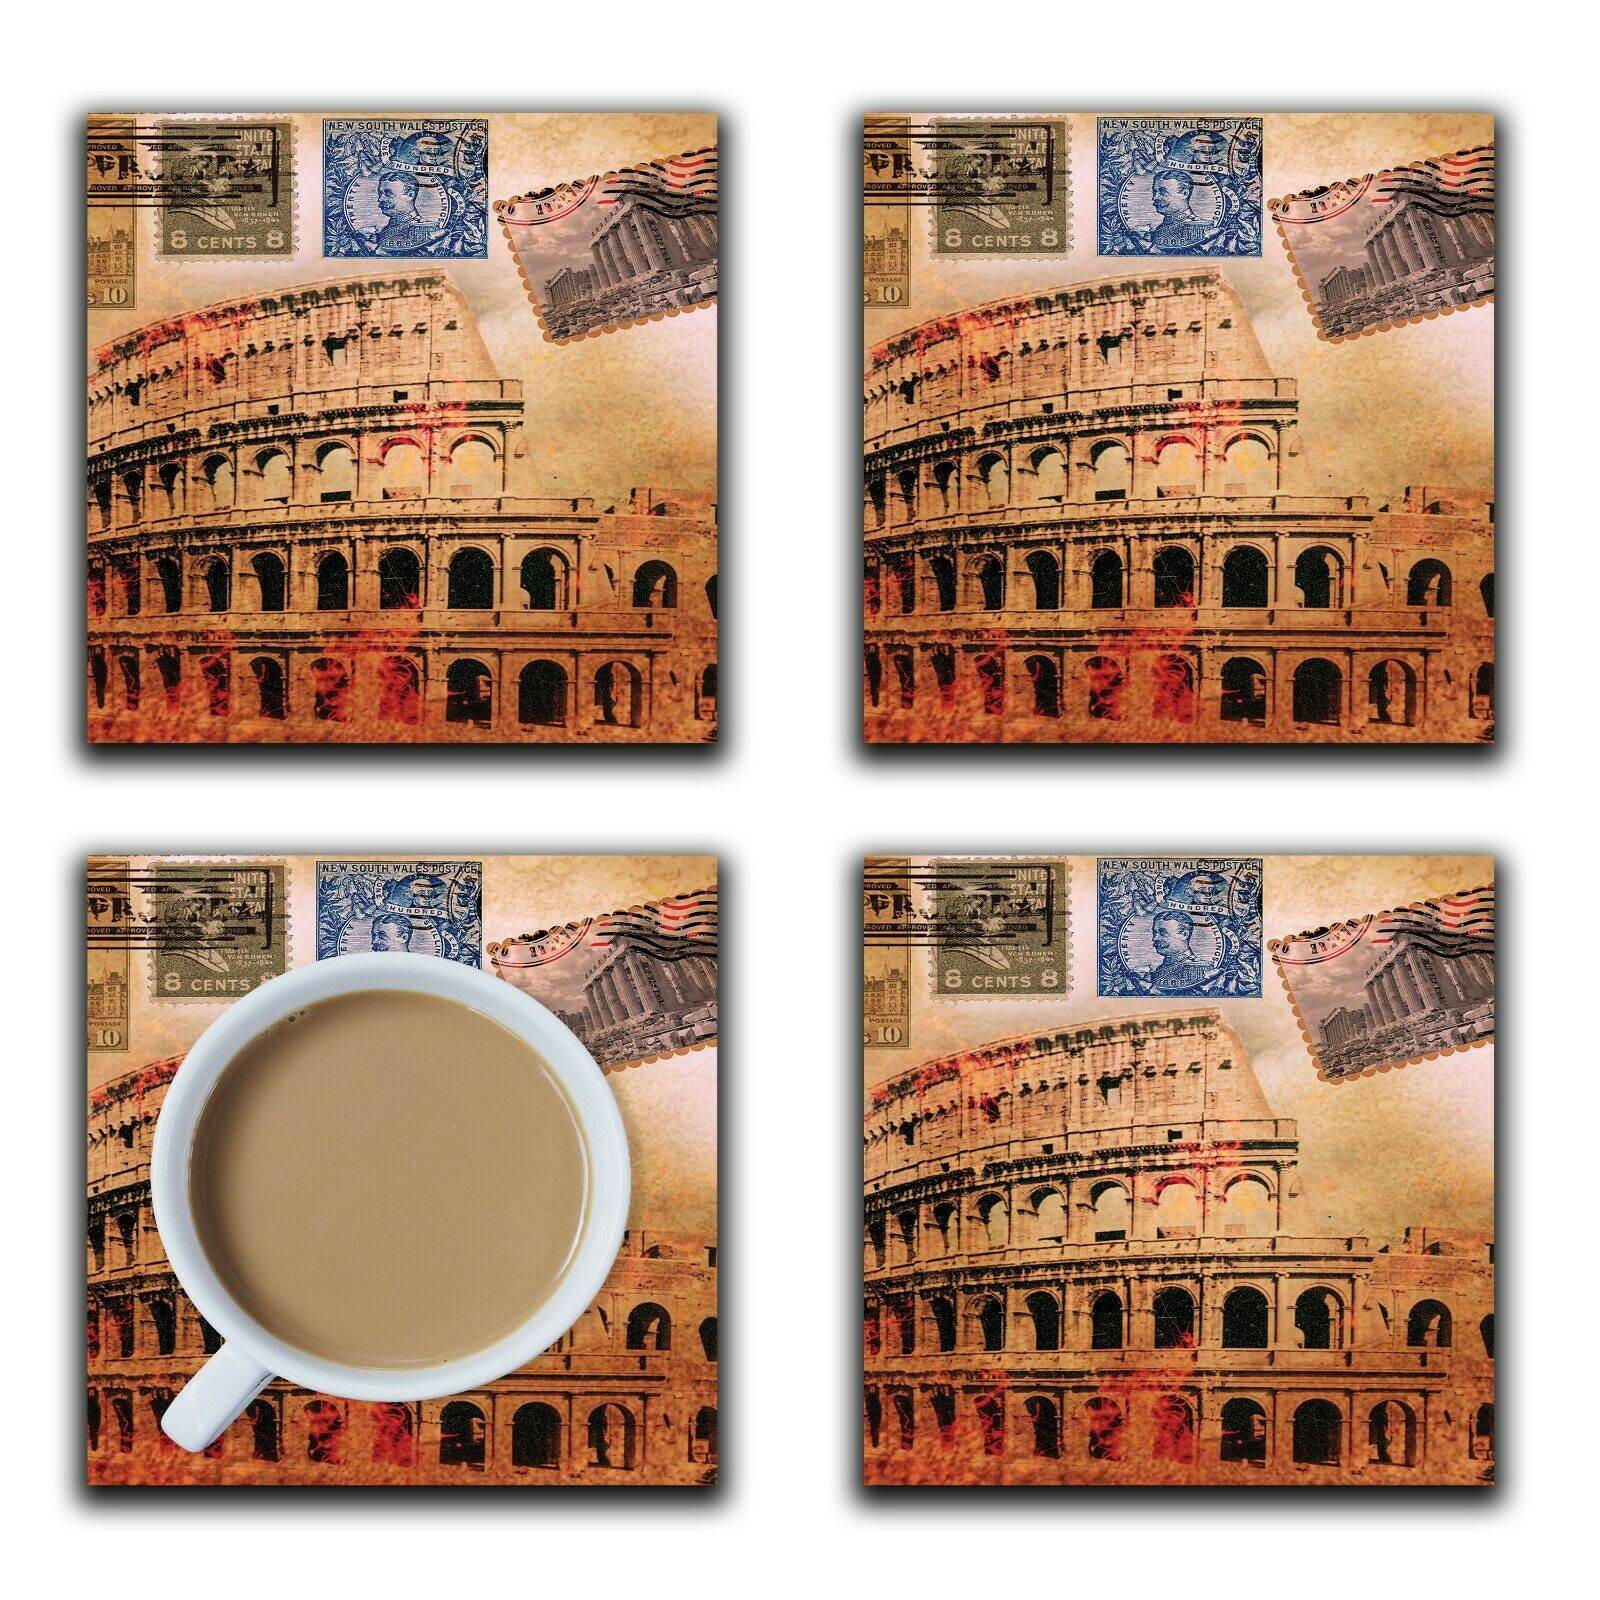 Embossi Printed Rome Colosseum, wood or ceramic tile, set of 4